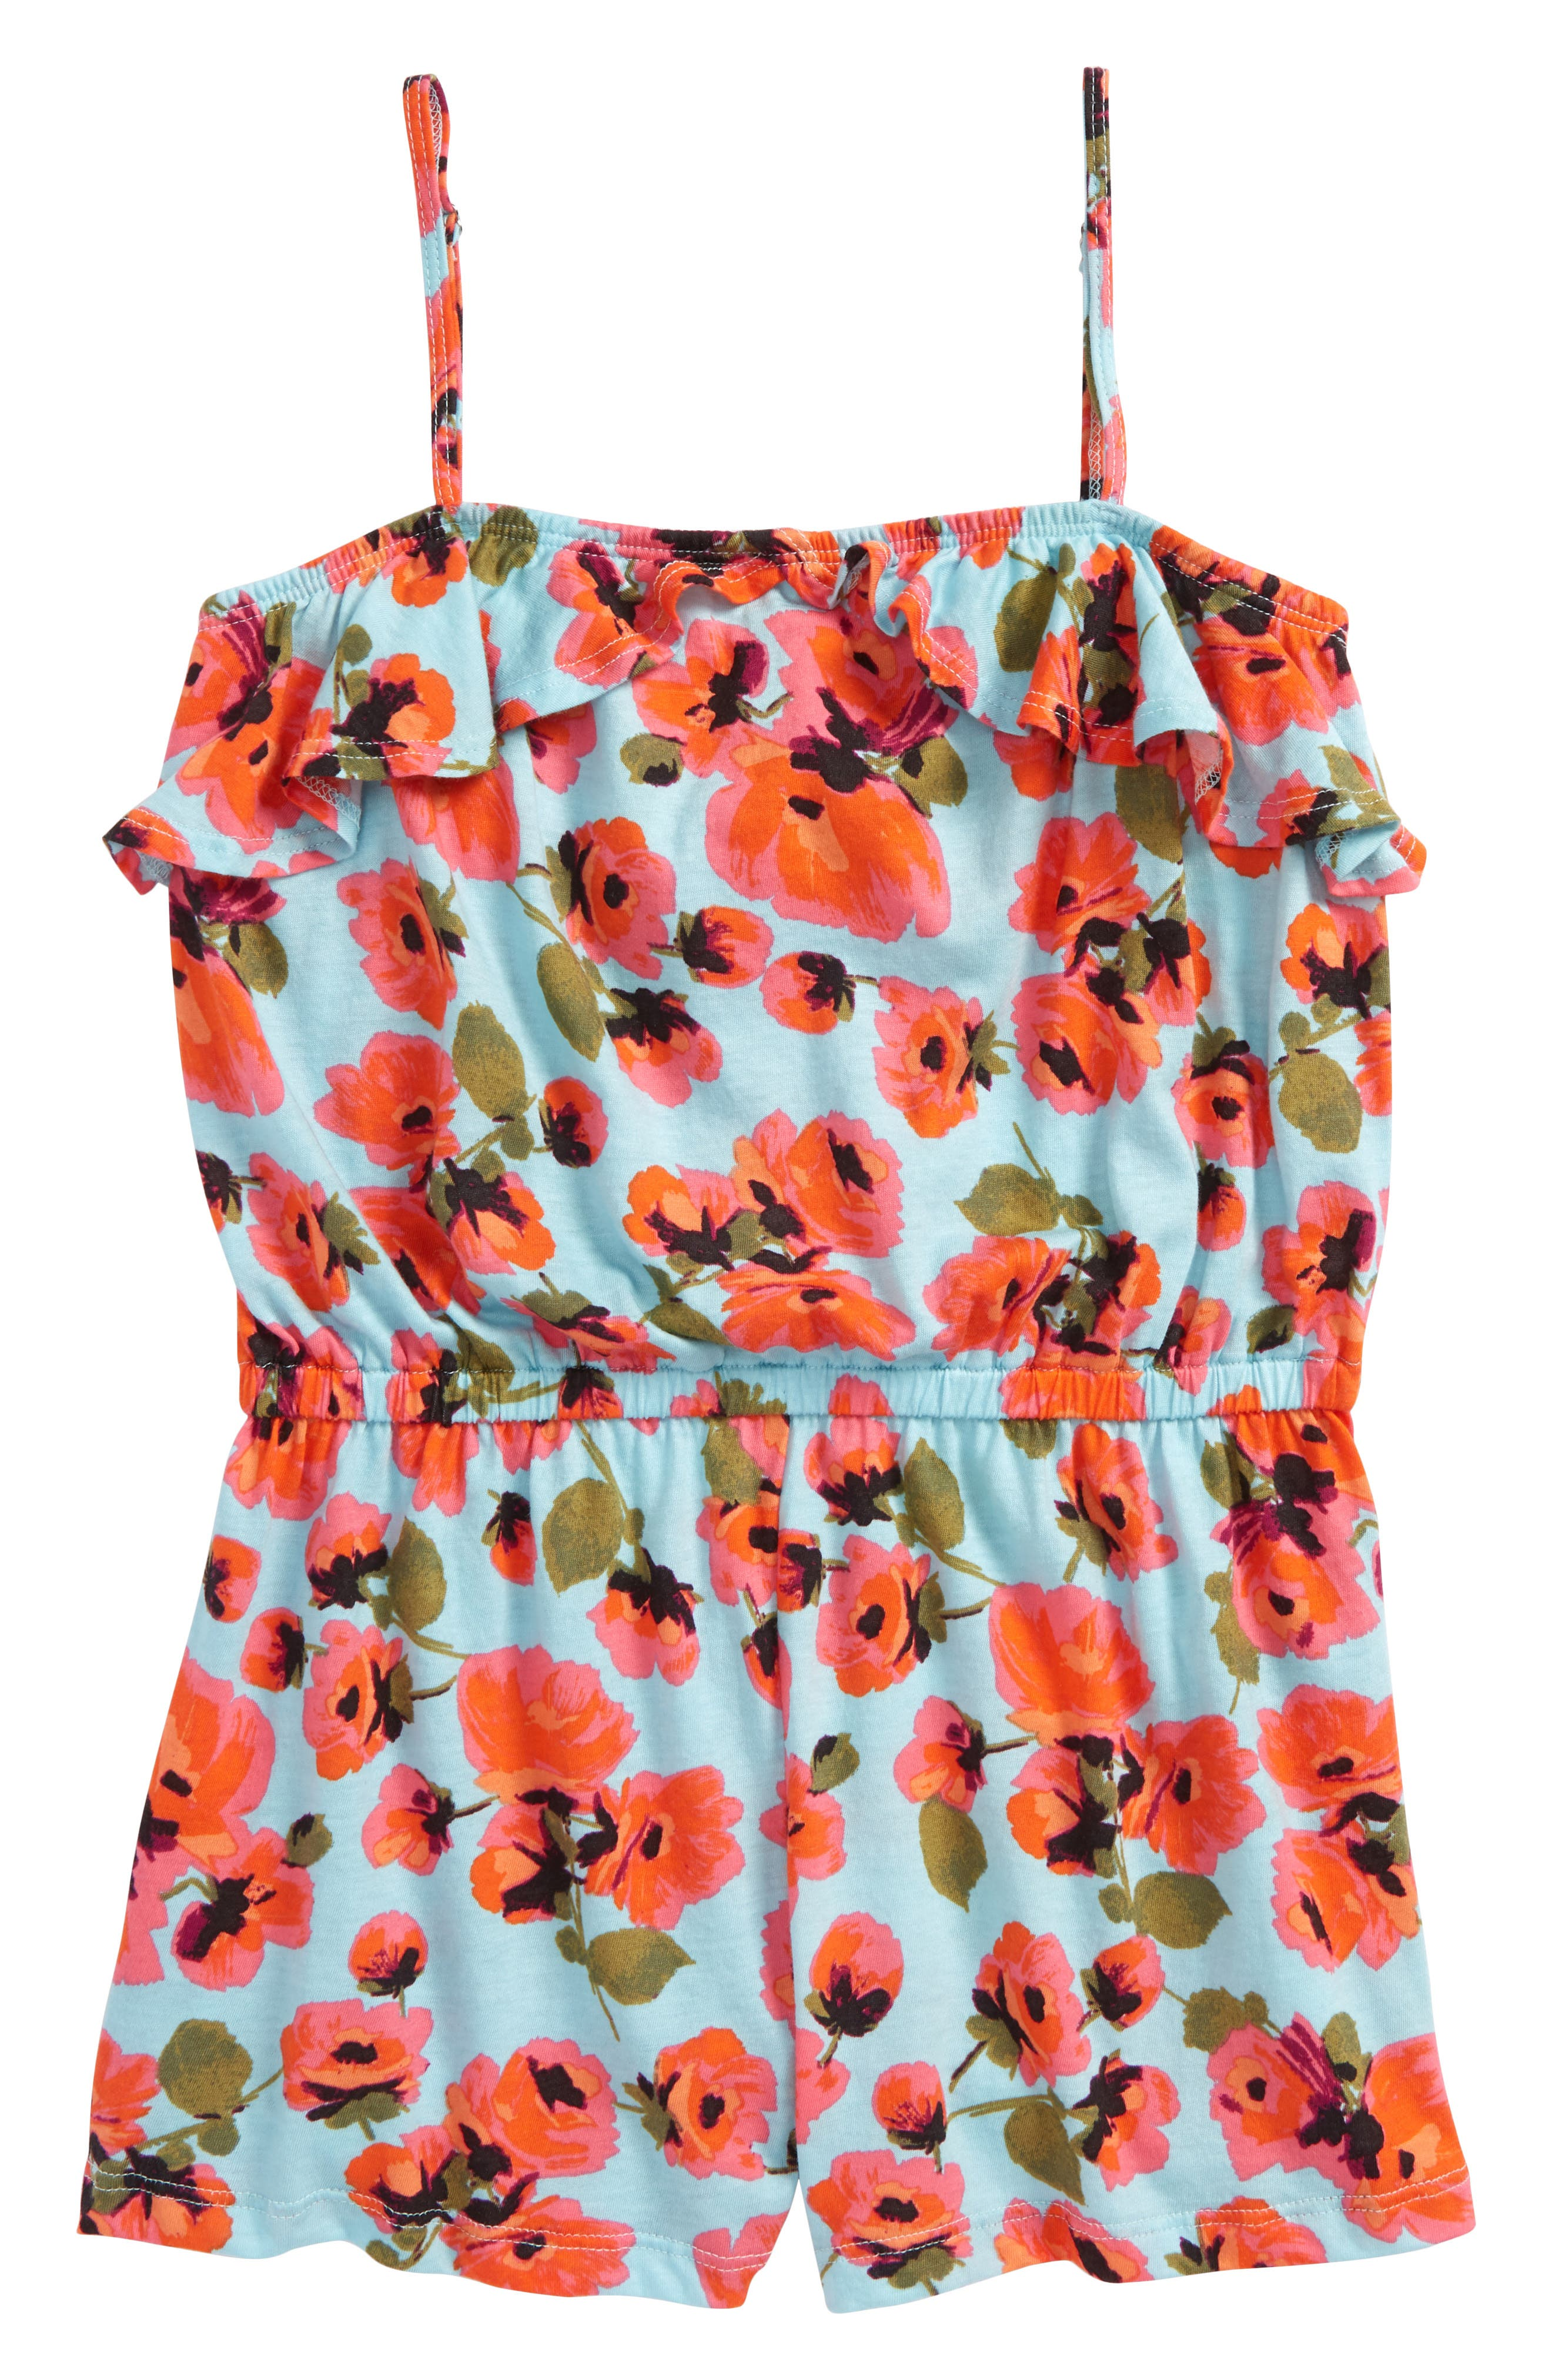 Play Time Romper,                             Main thumbnail 1, color,